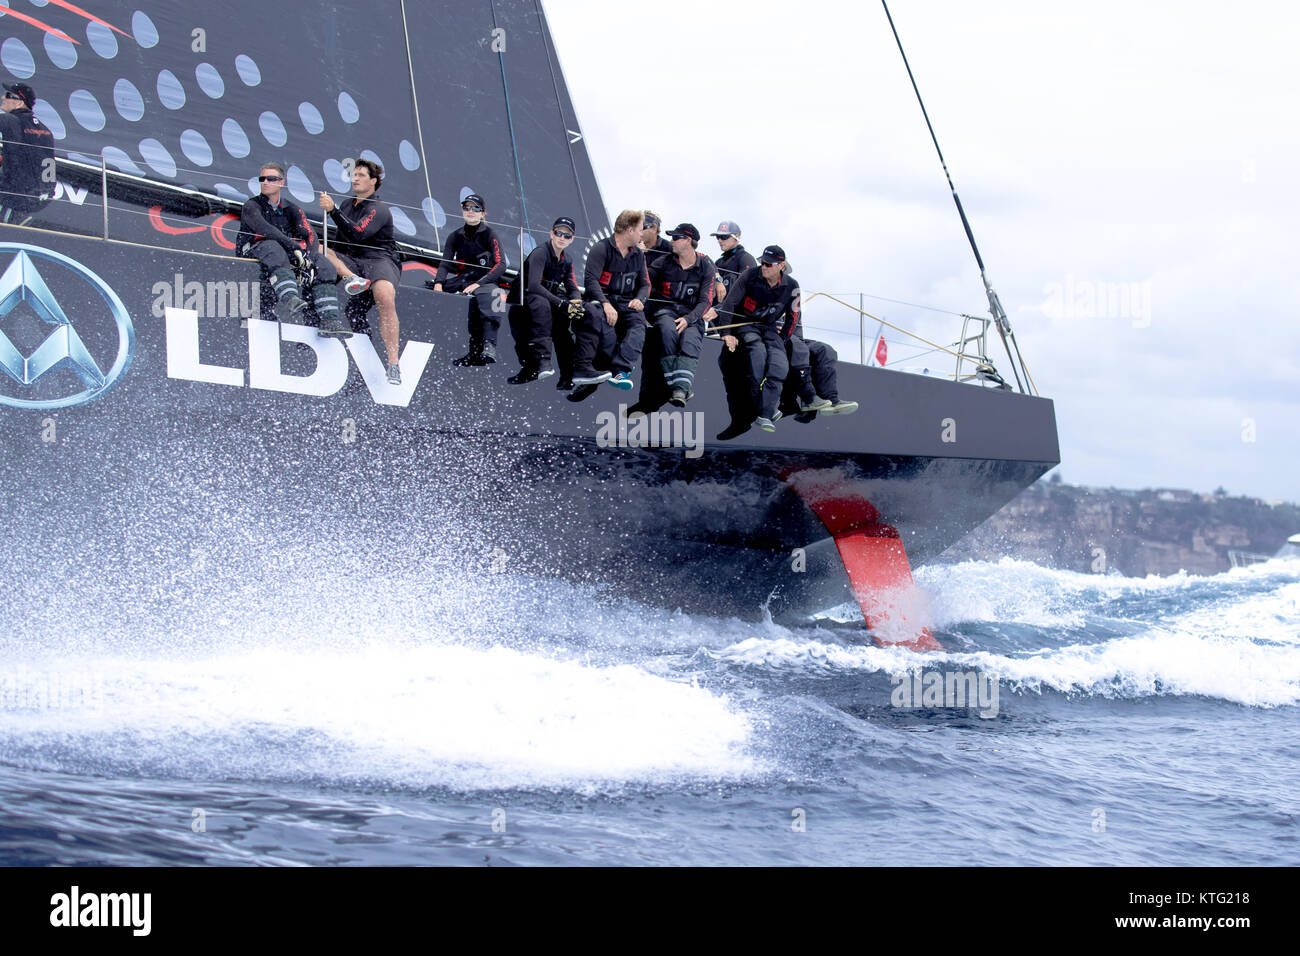 Sydney, Australia. 26th December 2017. Rolex Sydney to Hobart Yacht Race 2017. Crew with eyes front on LDV Comanche. - Stock Image